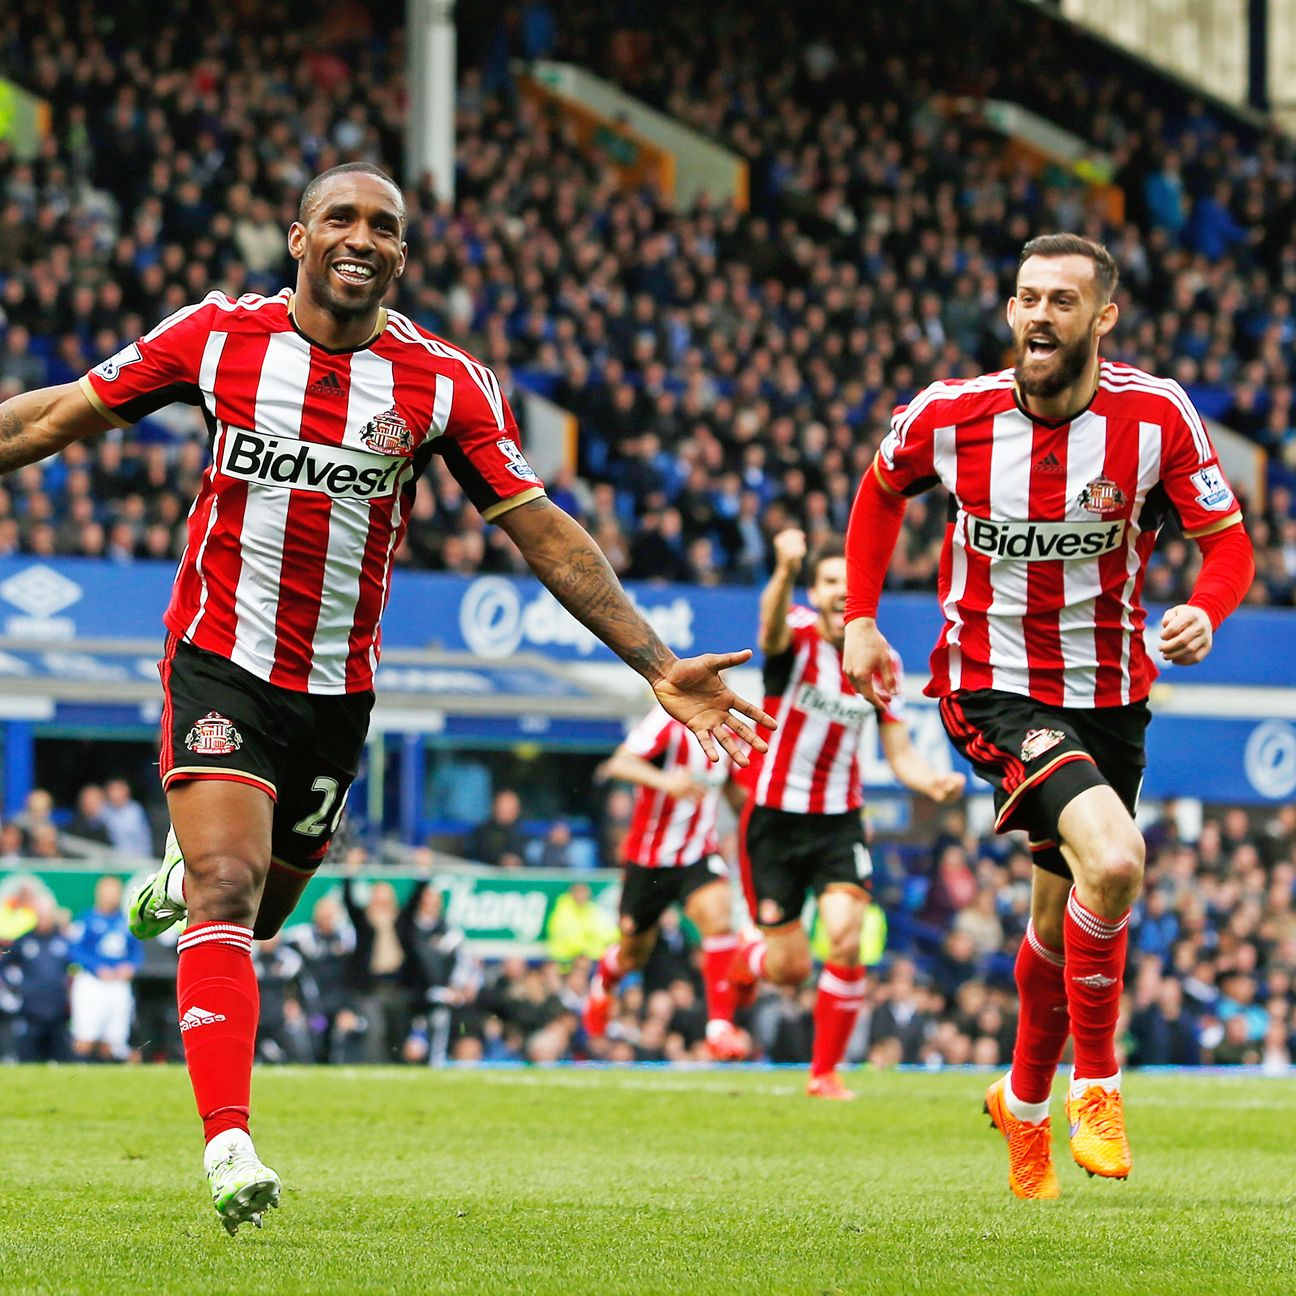 Jermaine Defoe helped give Sunderland's survival hopes a major boost in Saturday's 2-0 win at Everton.